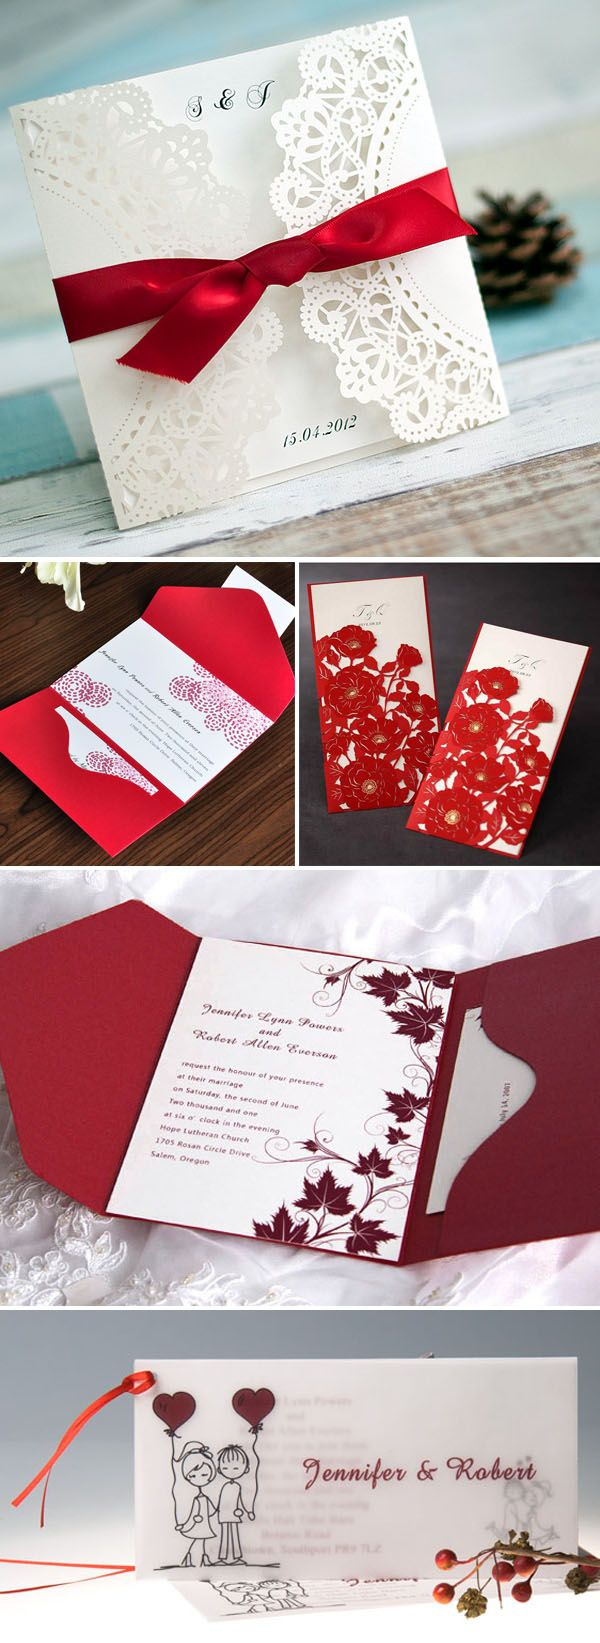 2135 best Invitations | Weddings images on Pinterest | Invitations ...